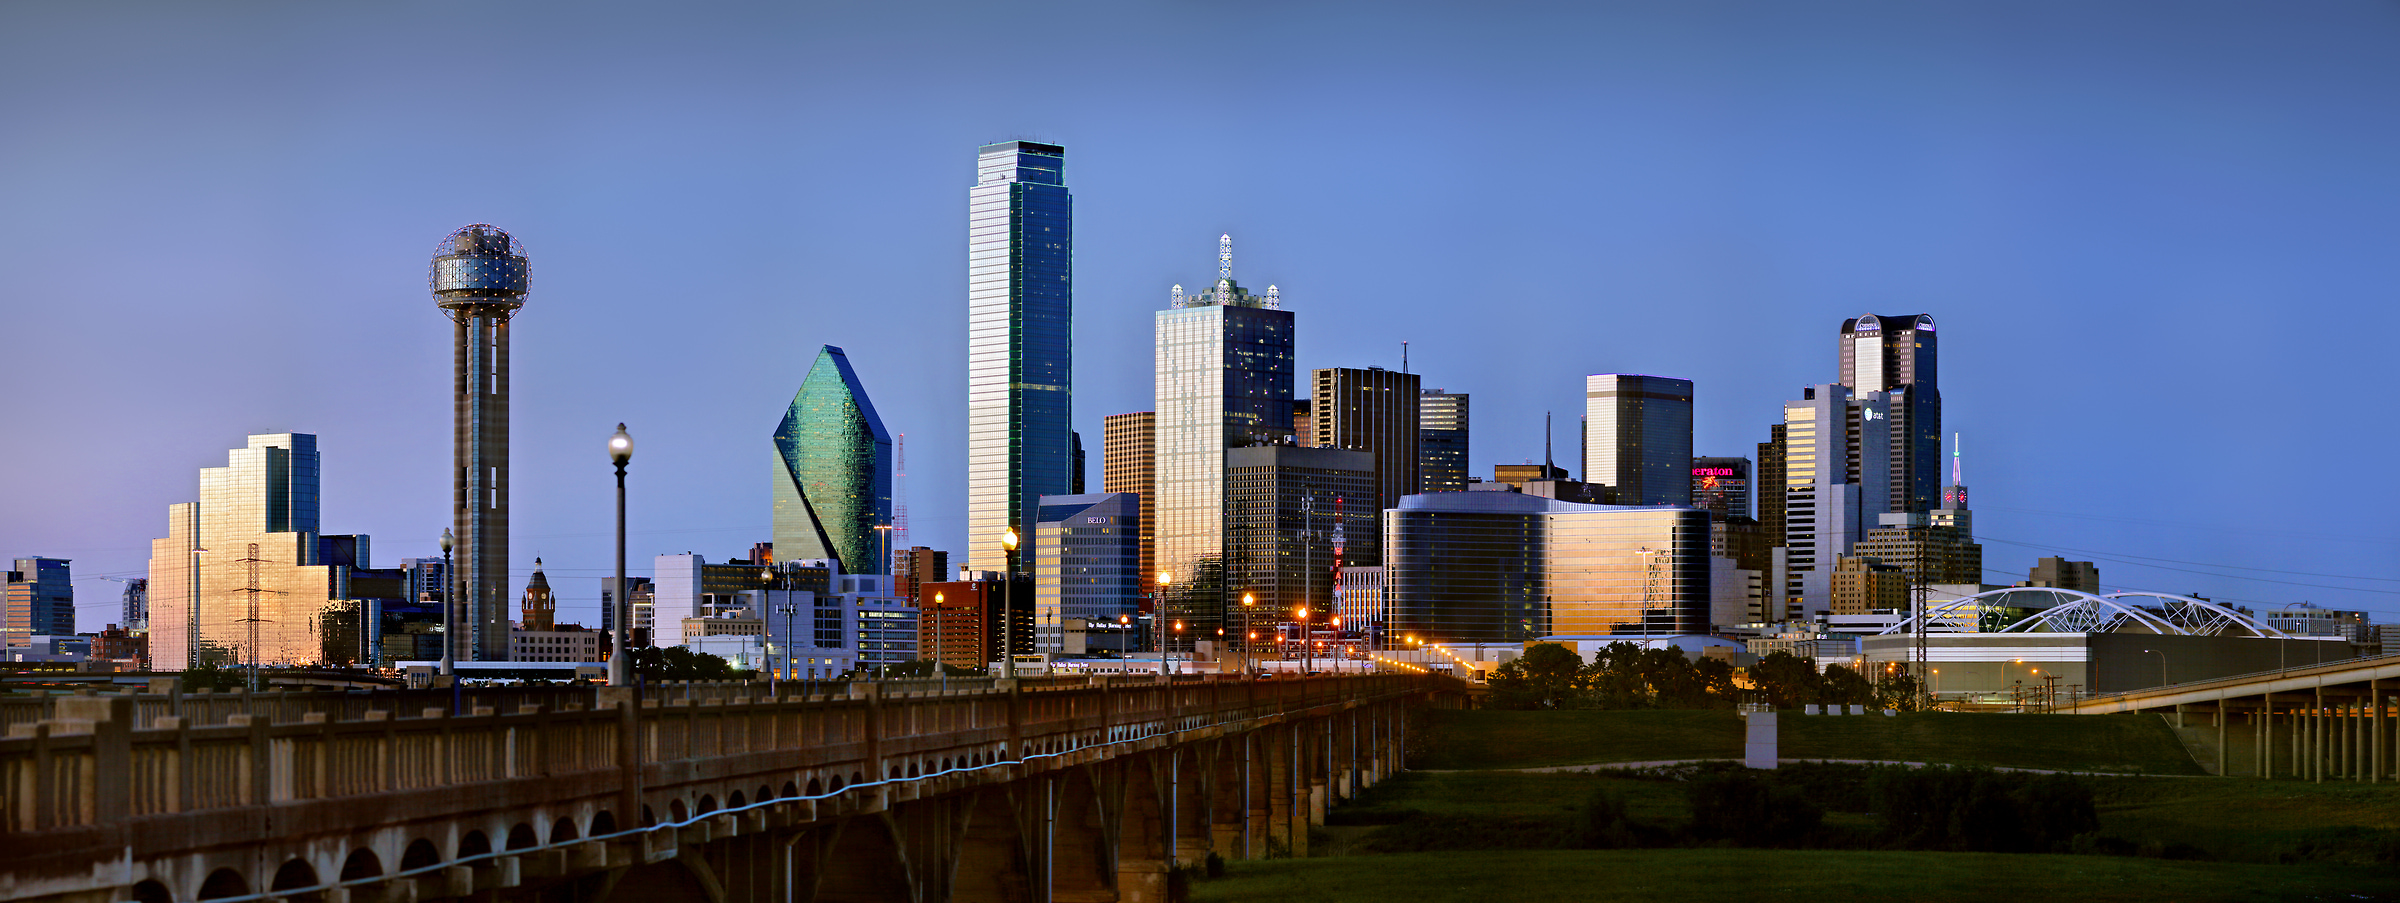 505 megapixels! A very high resolution skyline photo of Dallas; VAST photo created by Phil Crawshay in Dallas, Texas, USA